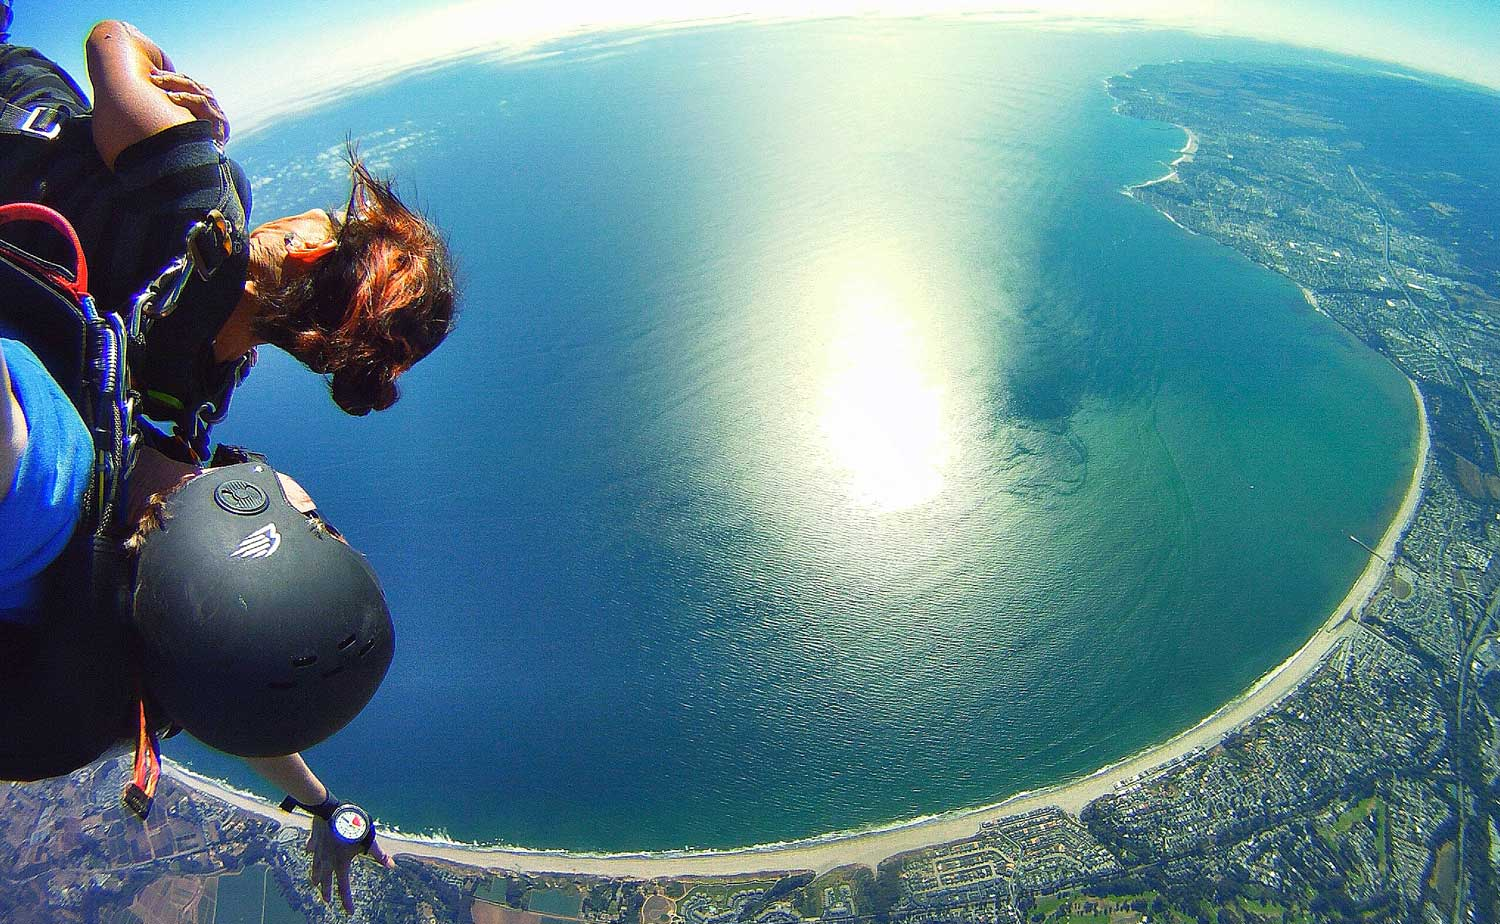 Conquer Your Fears With Skydiving